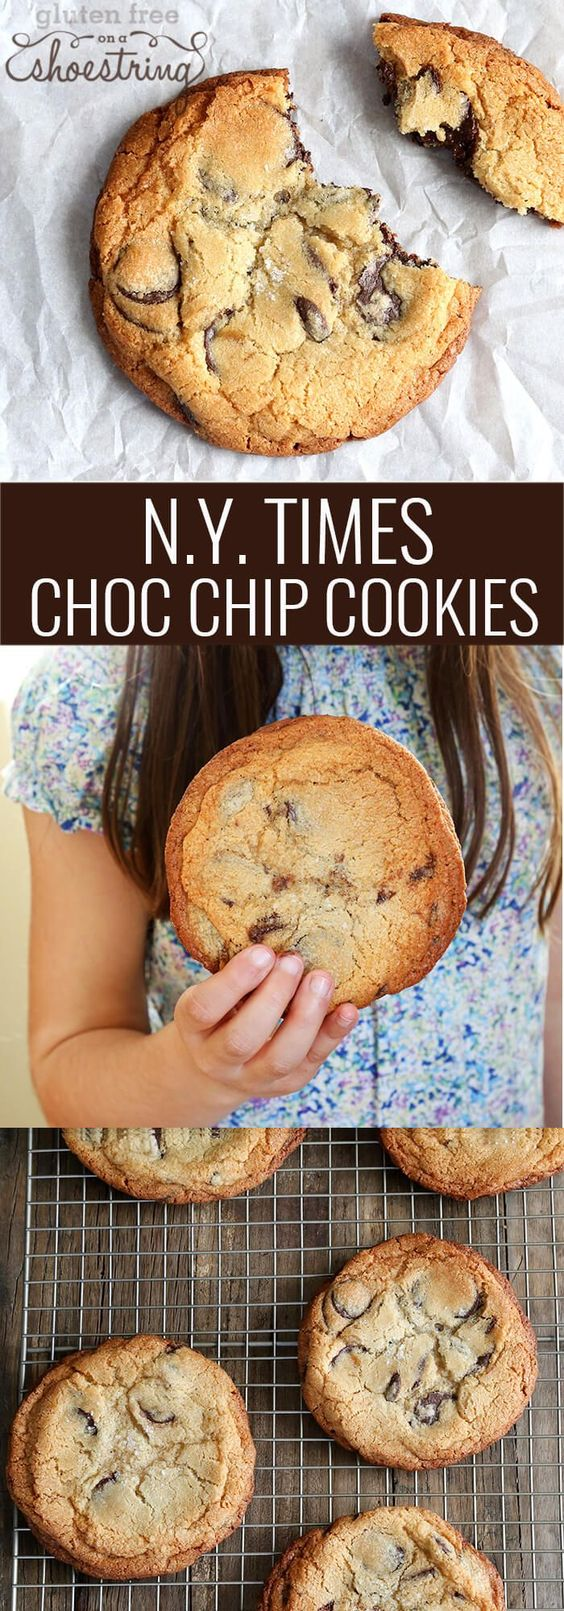 Gluten Free New York Times Chocolate Chip Cookies ...